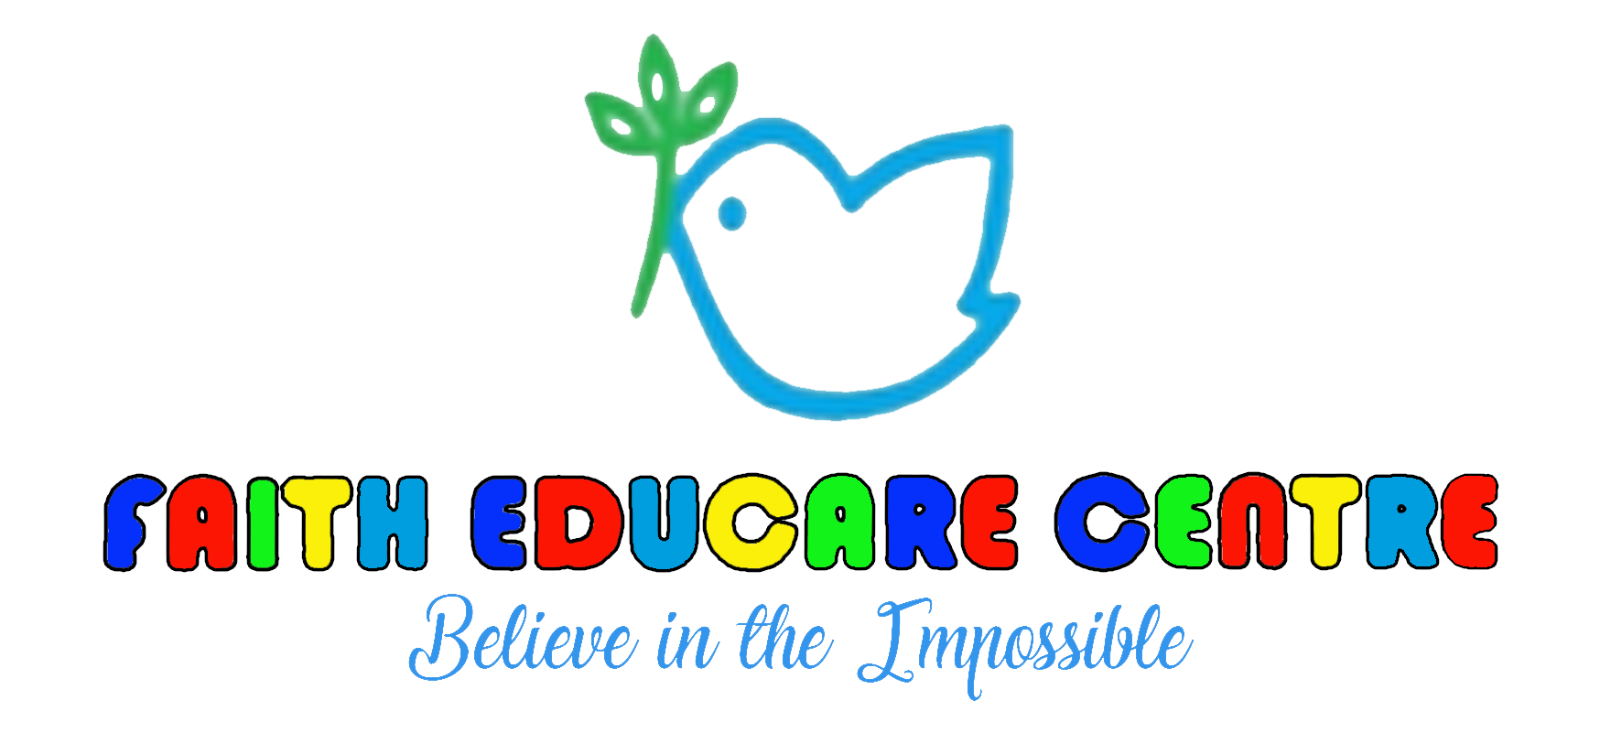 Faith Educare Centre @Sengkang Pte Ltd